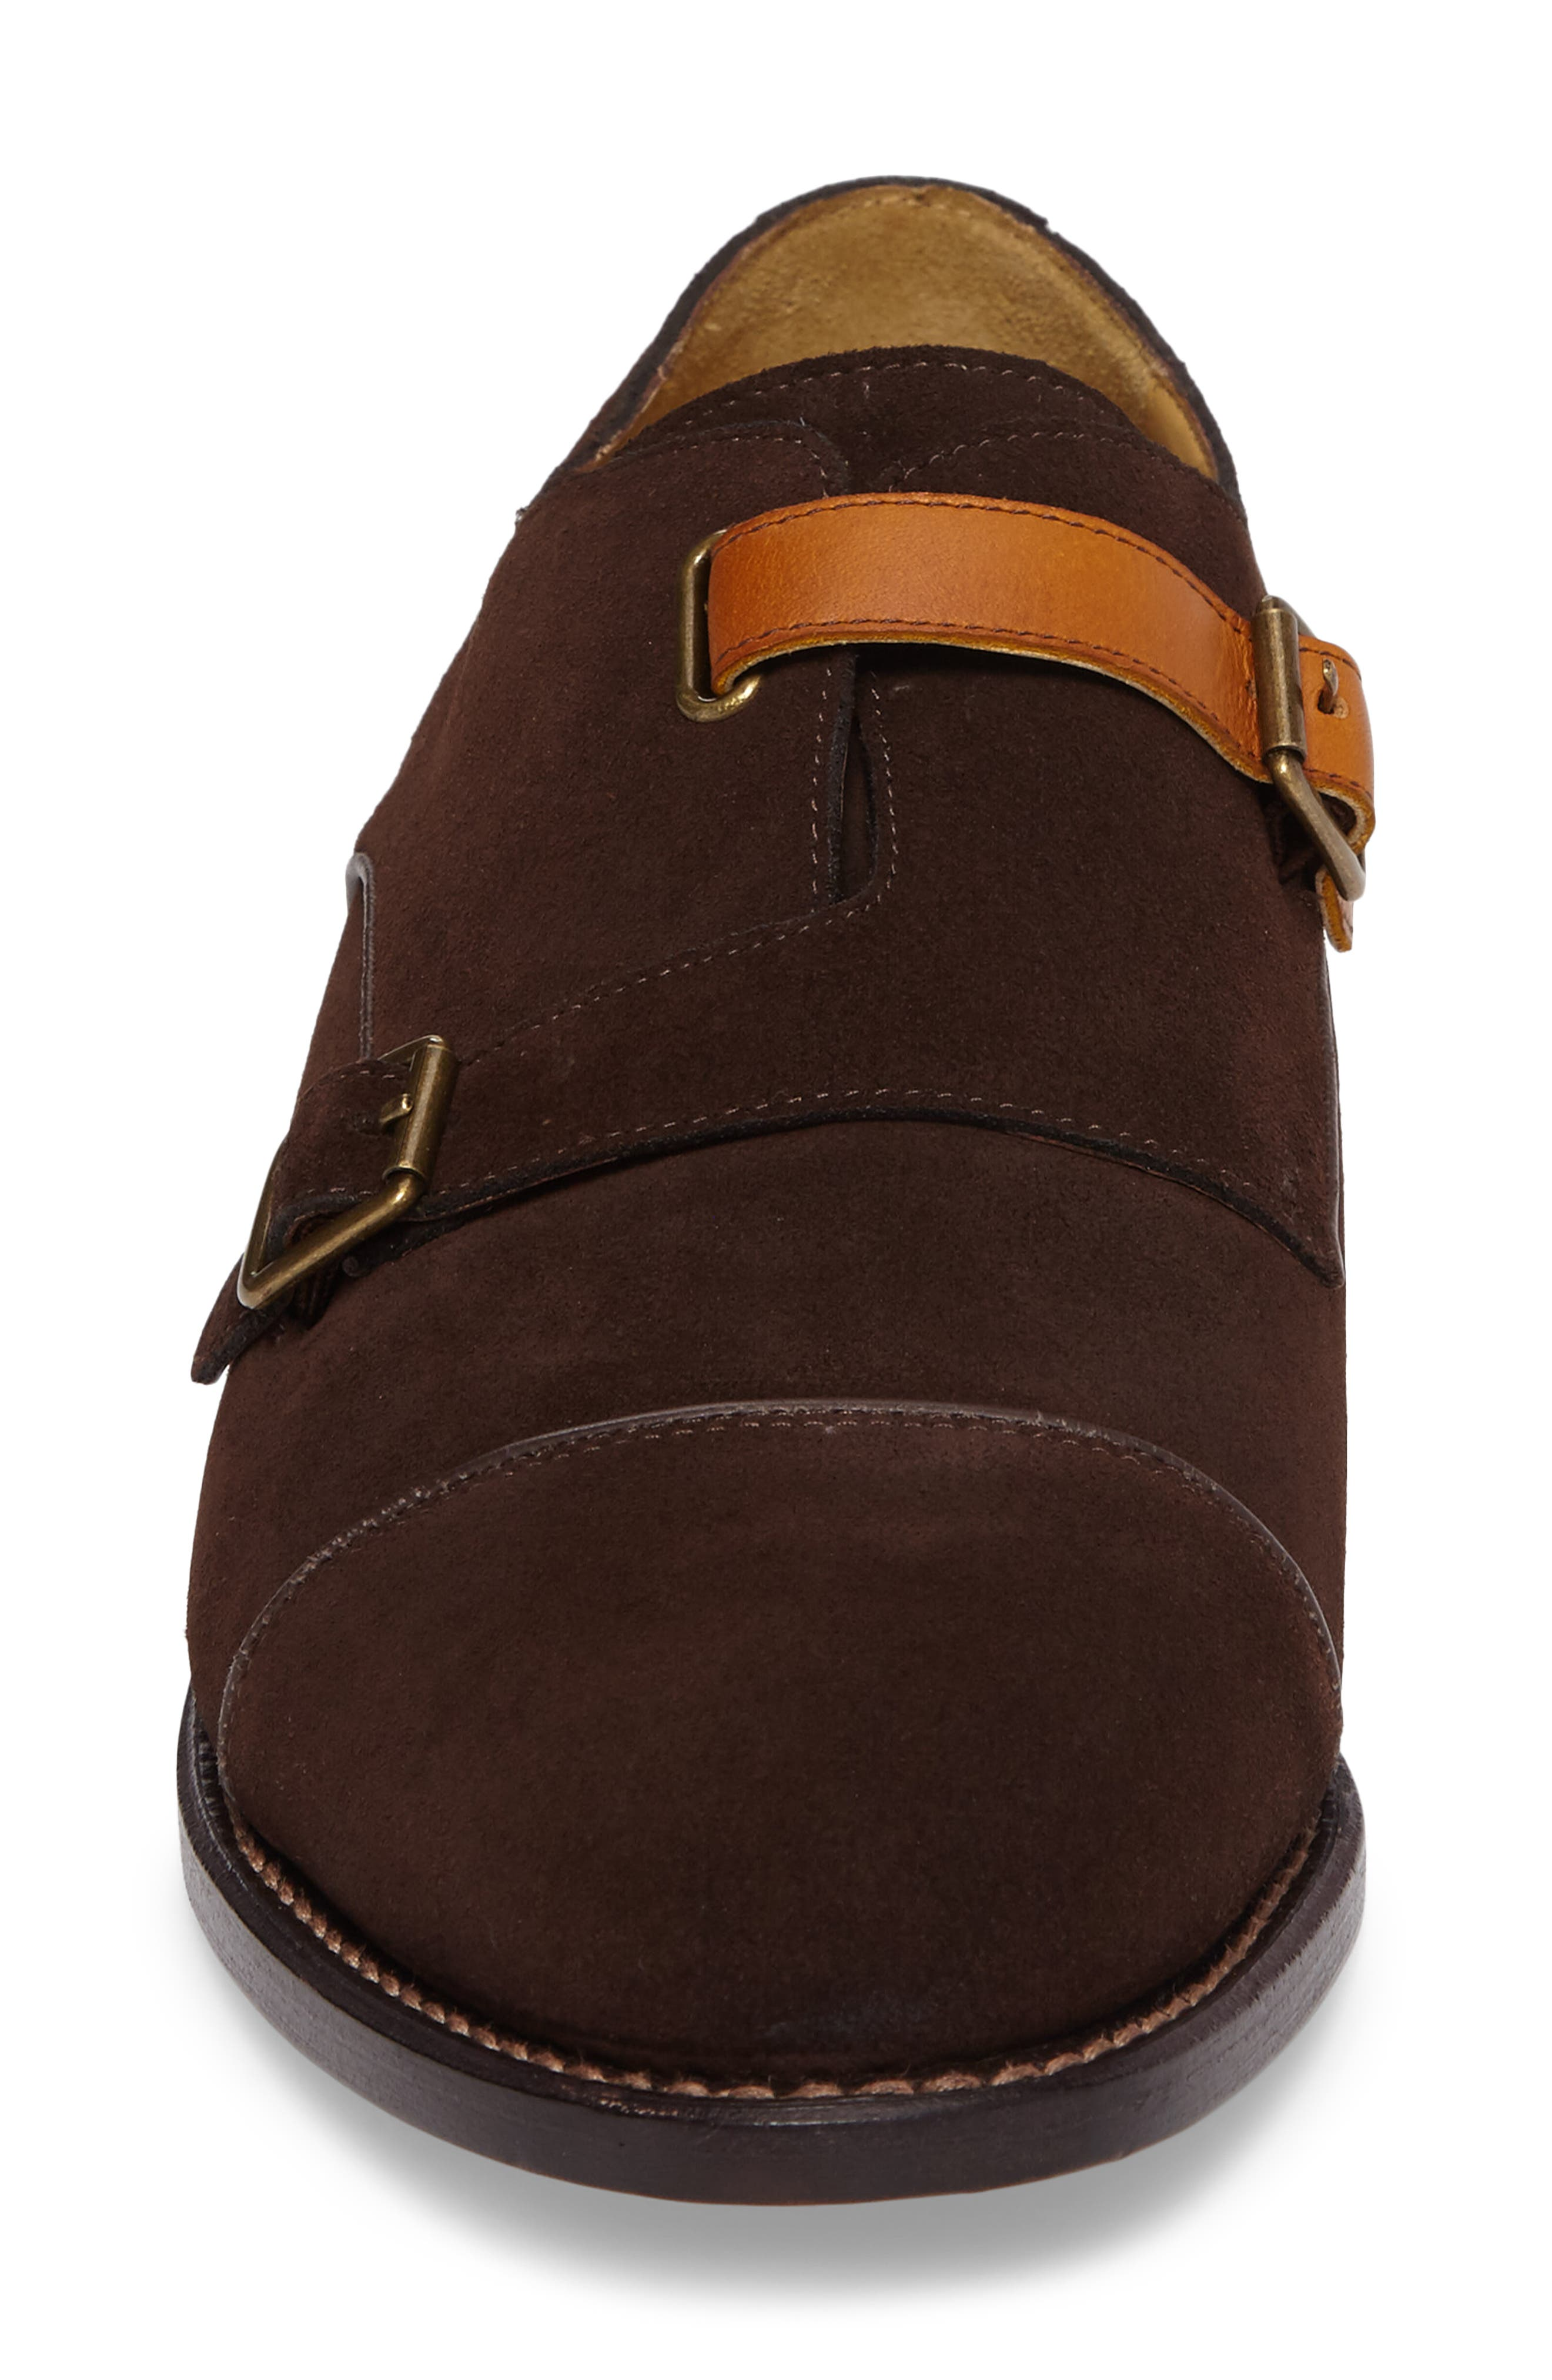 Alternate Image 4  - Michael Bastian Brando Cap Toe Monk Shoe (Men)